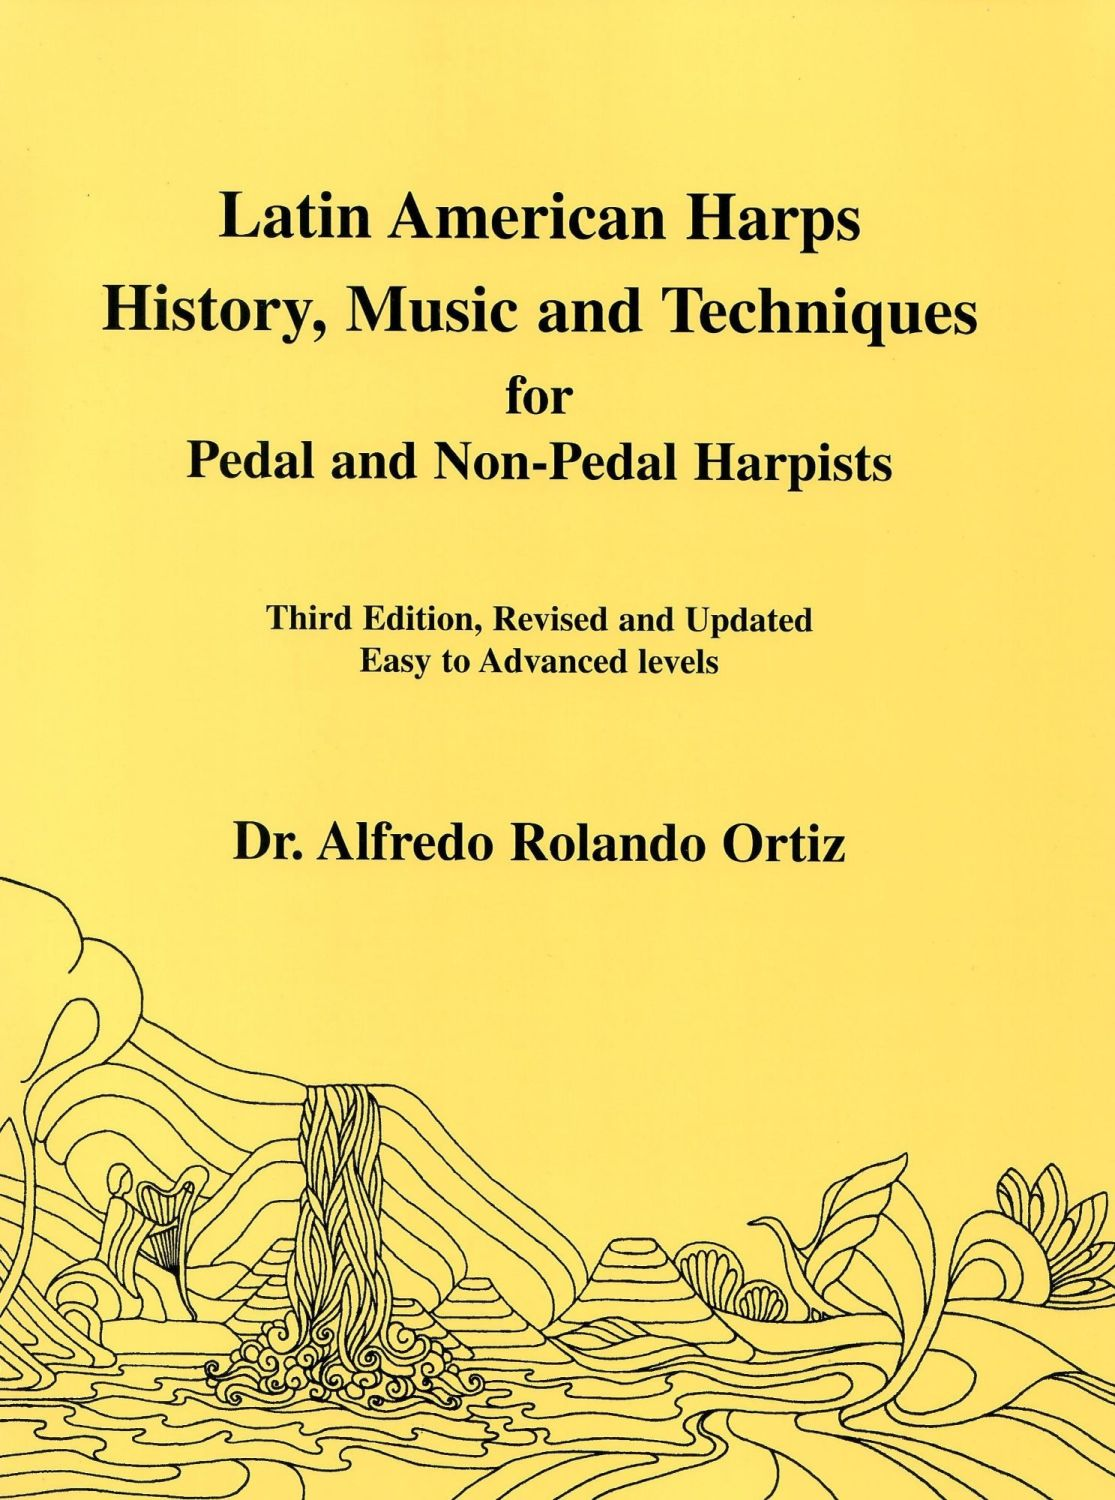 Latin American Harps History, Music and Techniques for Pedal & Non Pedal Ha